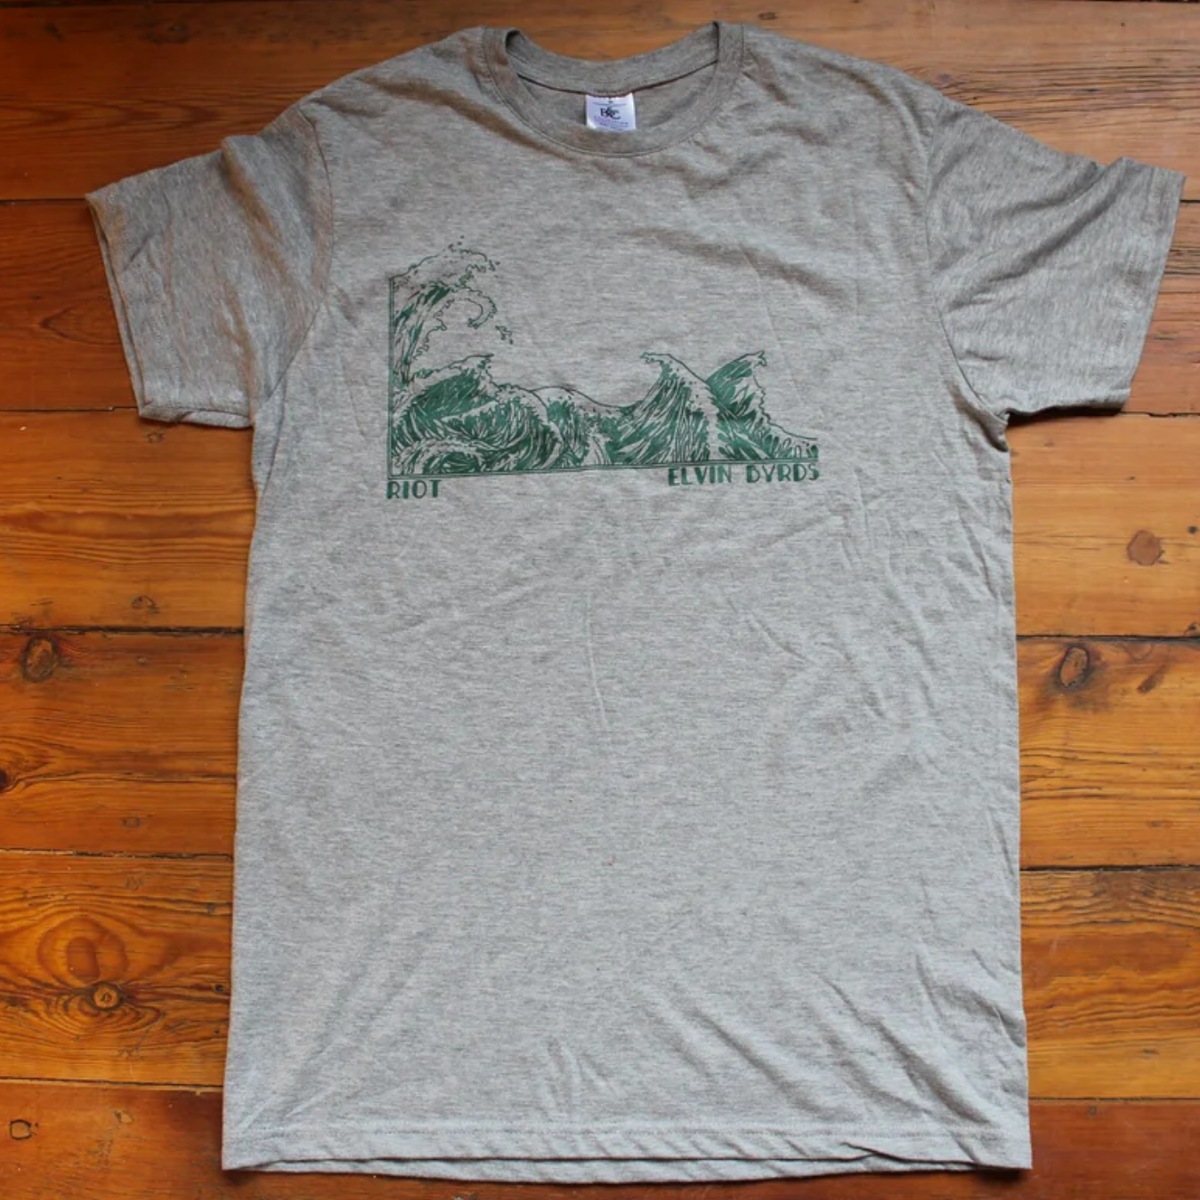 Image of ELVIN BYRDS — T-Shirt (Grey/Green)